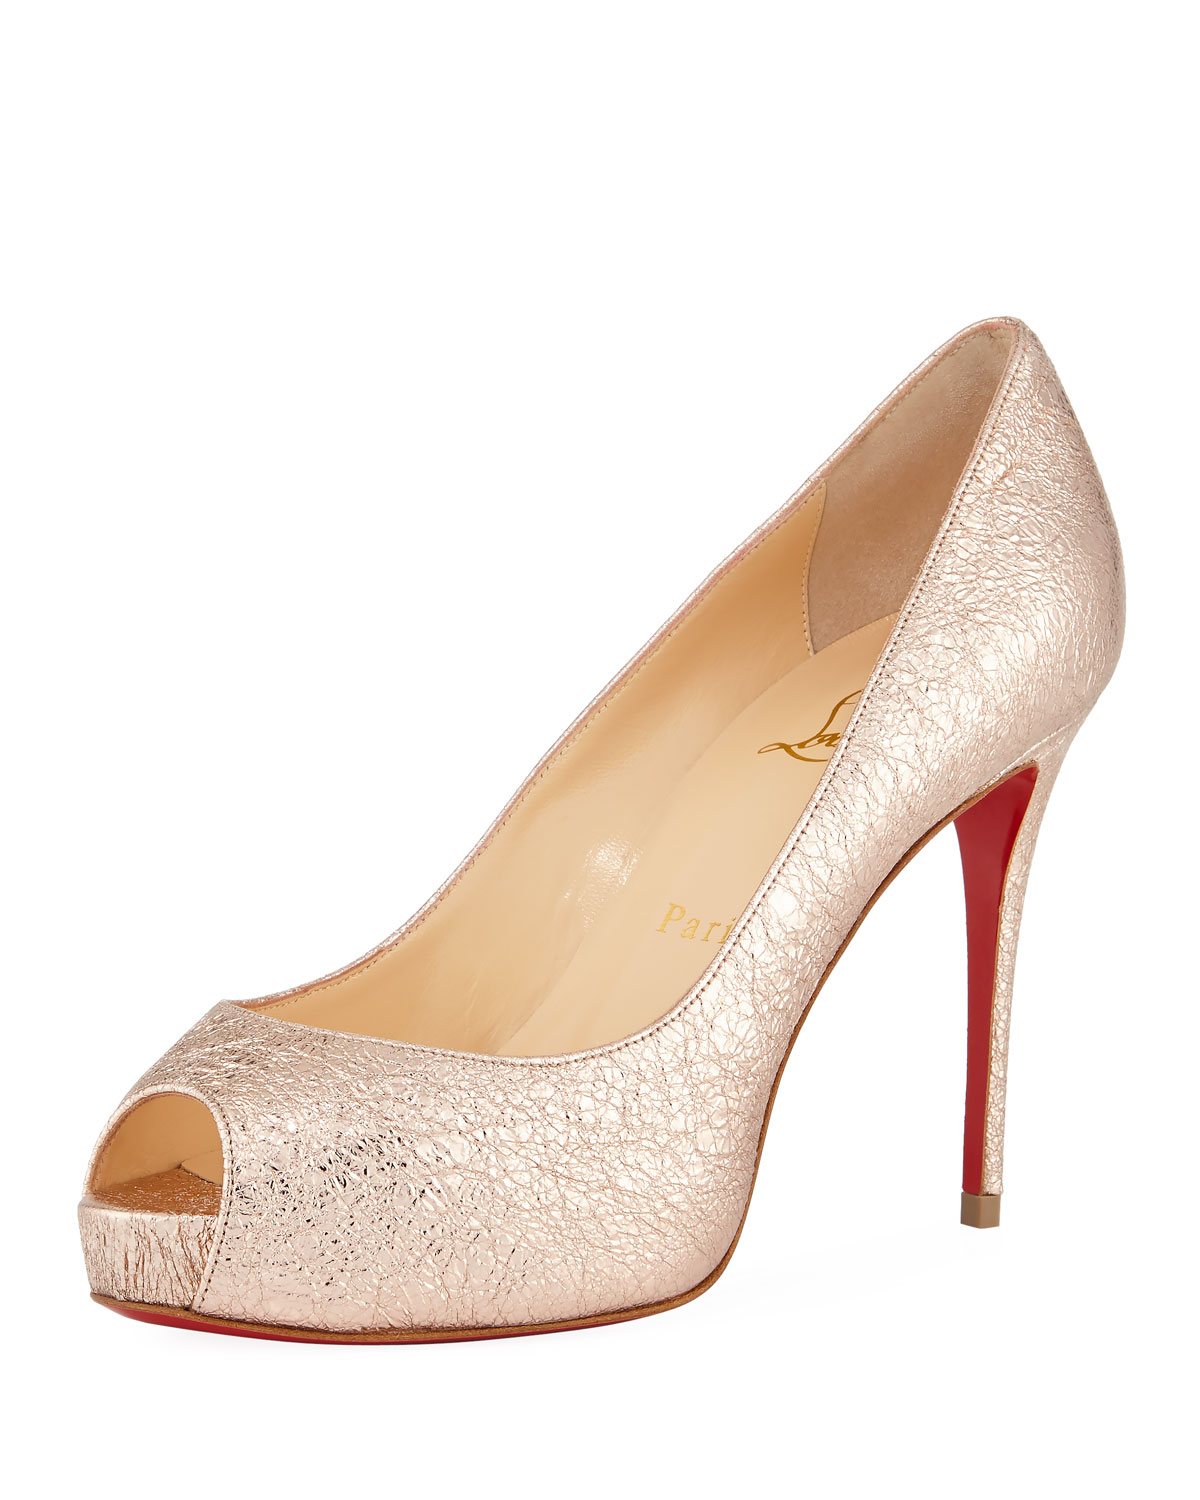 on sale ae9d4 567cd New Very Prive 100mm Crackled Leather Red Sole Pump